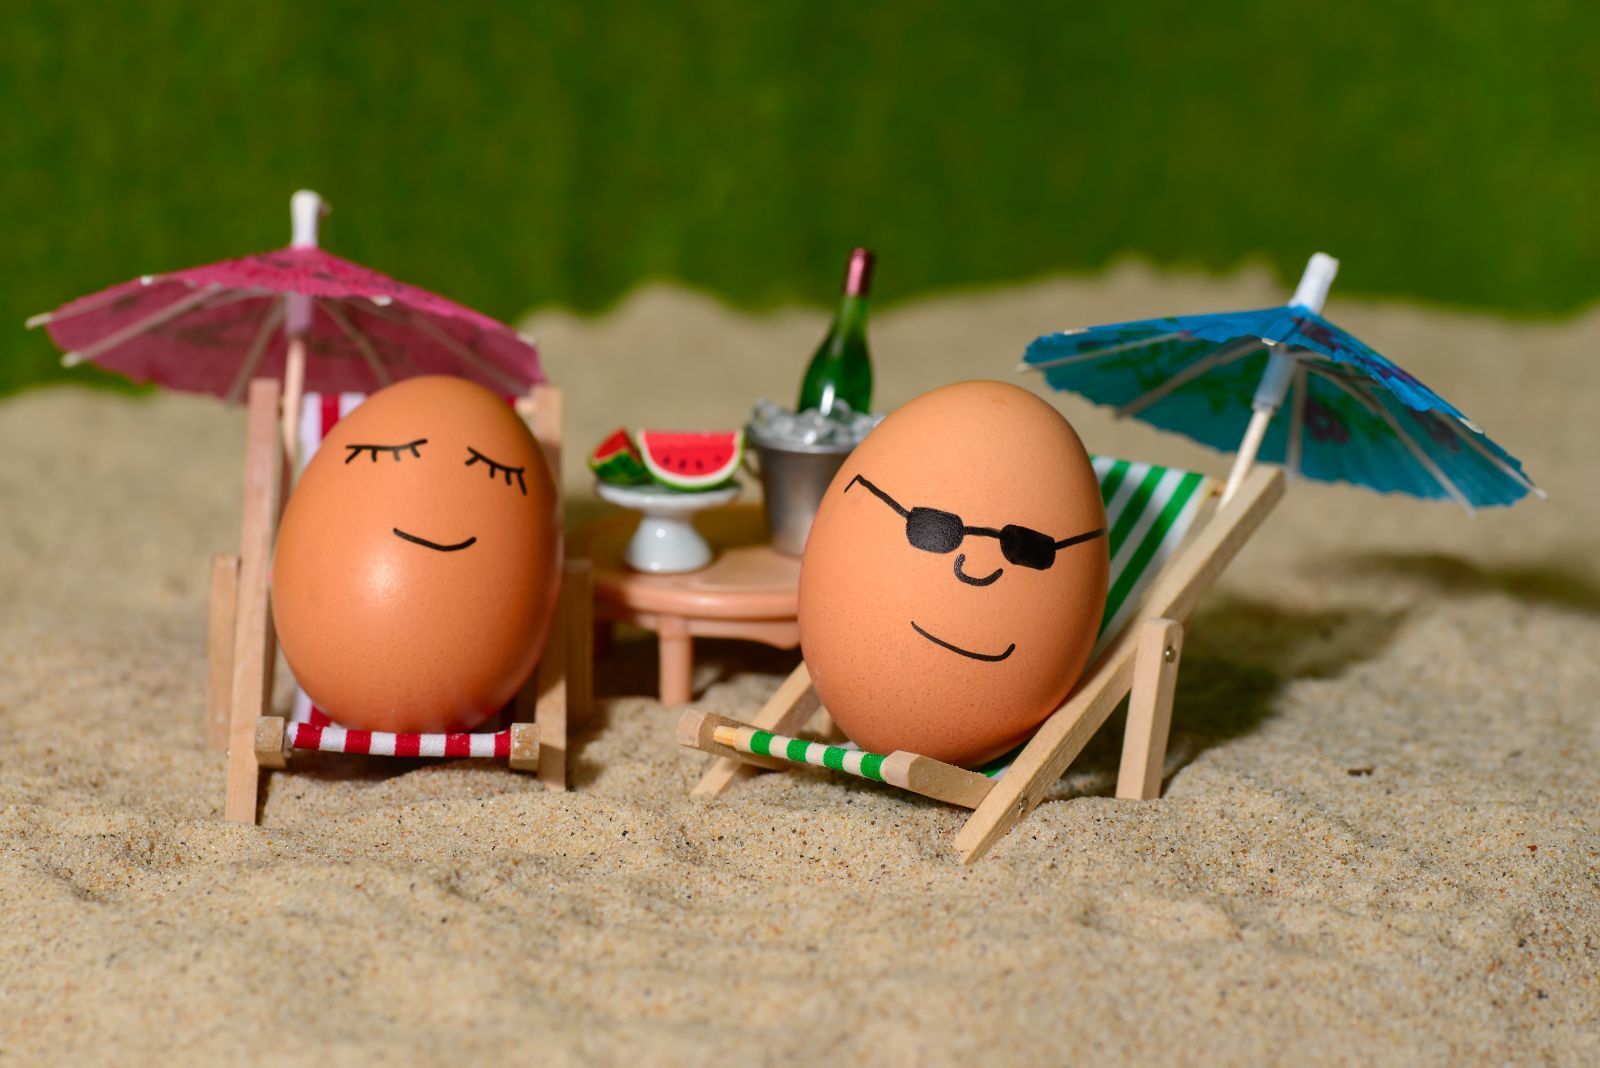 Easter tourism boom for the UK - made tourism